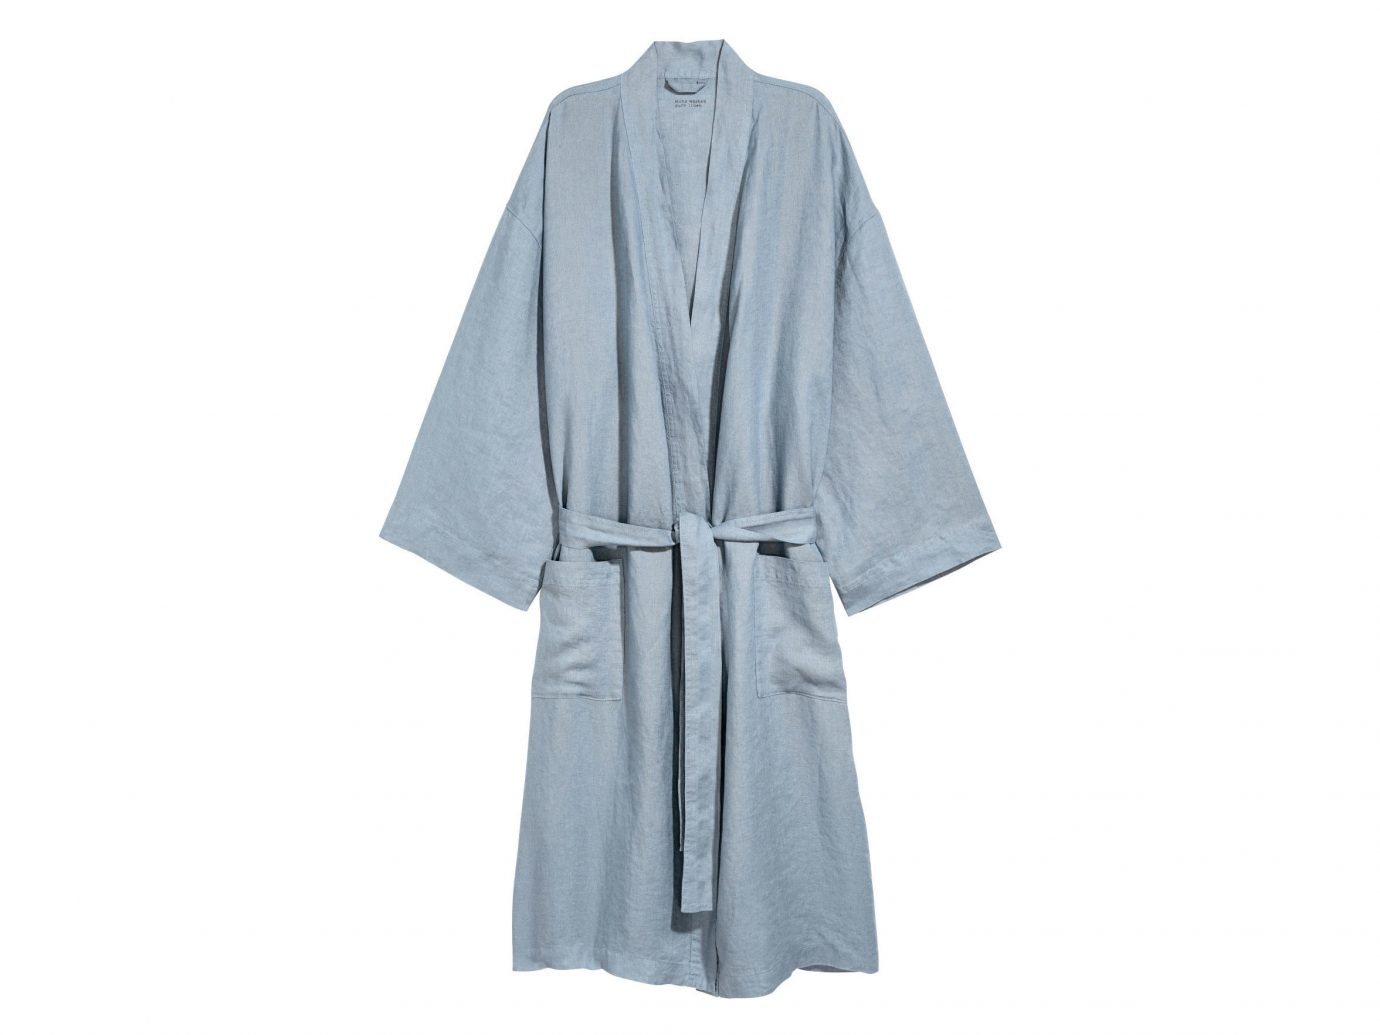 City Copenhagen Kyoto Marrakech Palm Springs Style + Design Travel Shop Tulum clothing robe day dress dress nightwear clothes hanger sleeve